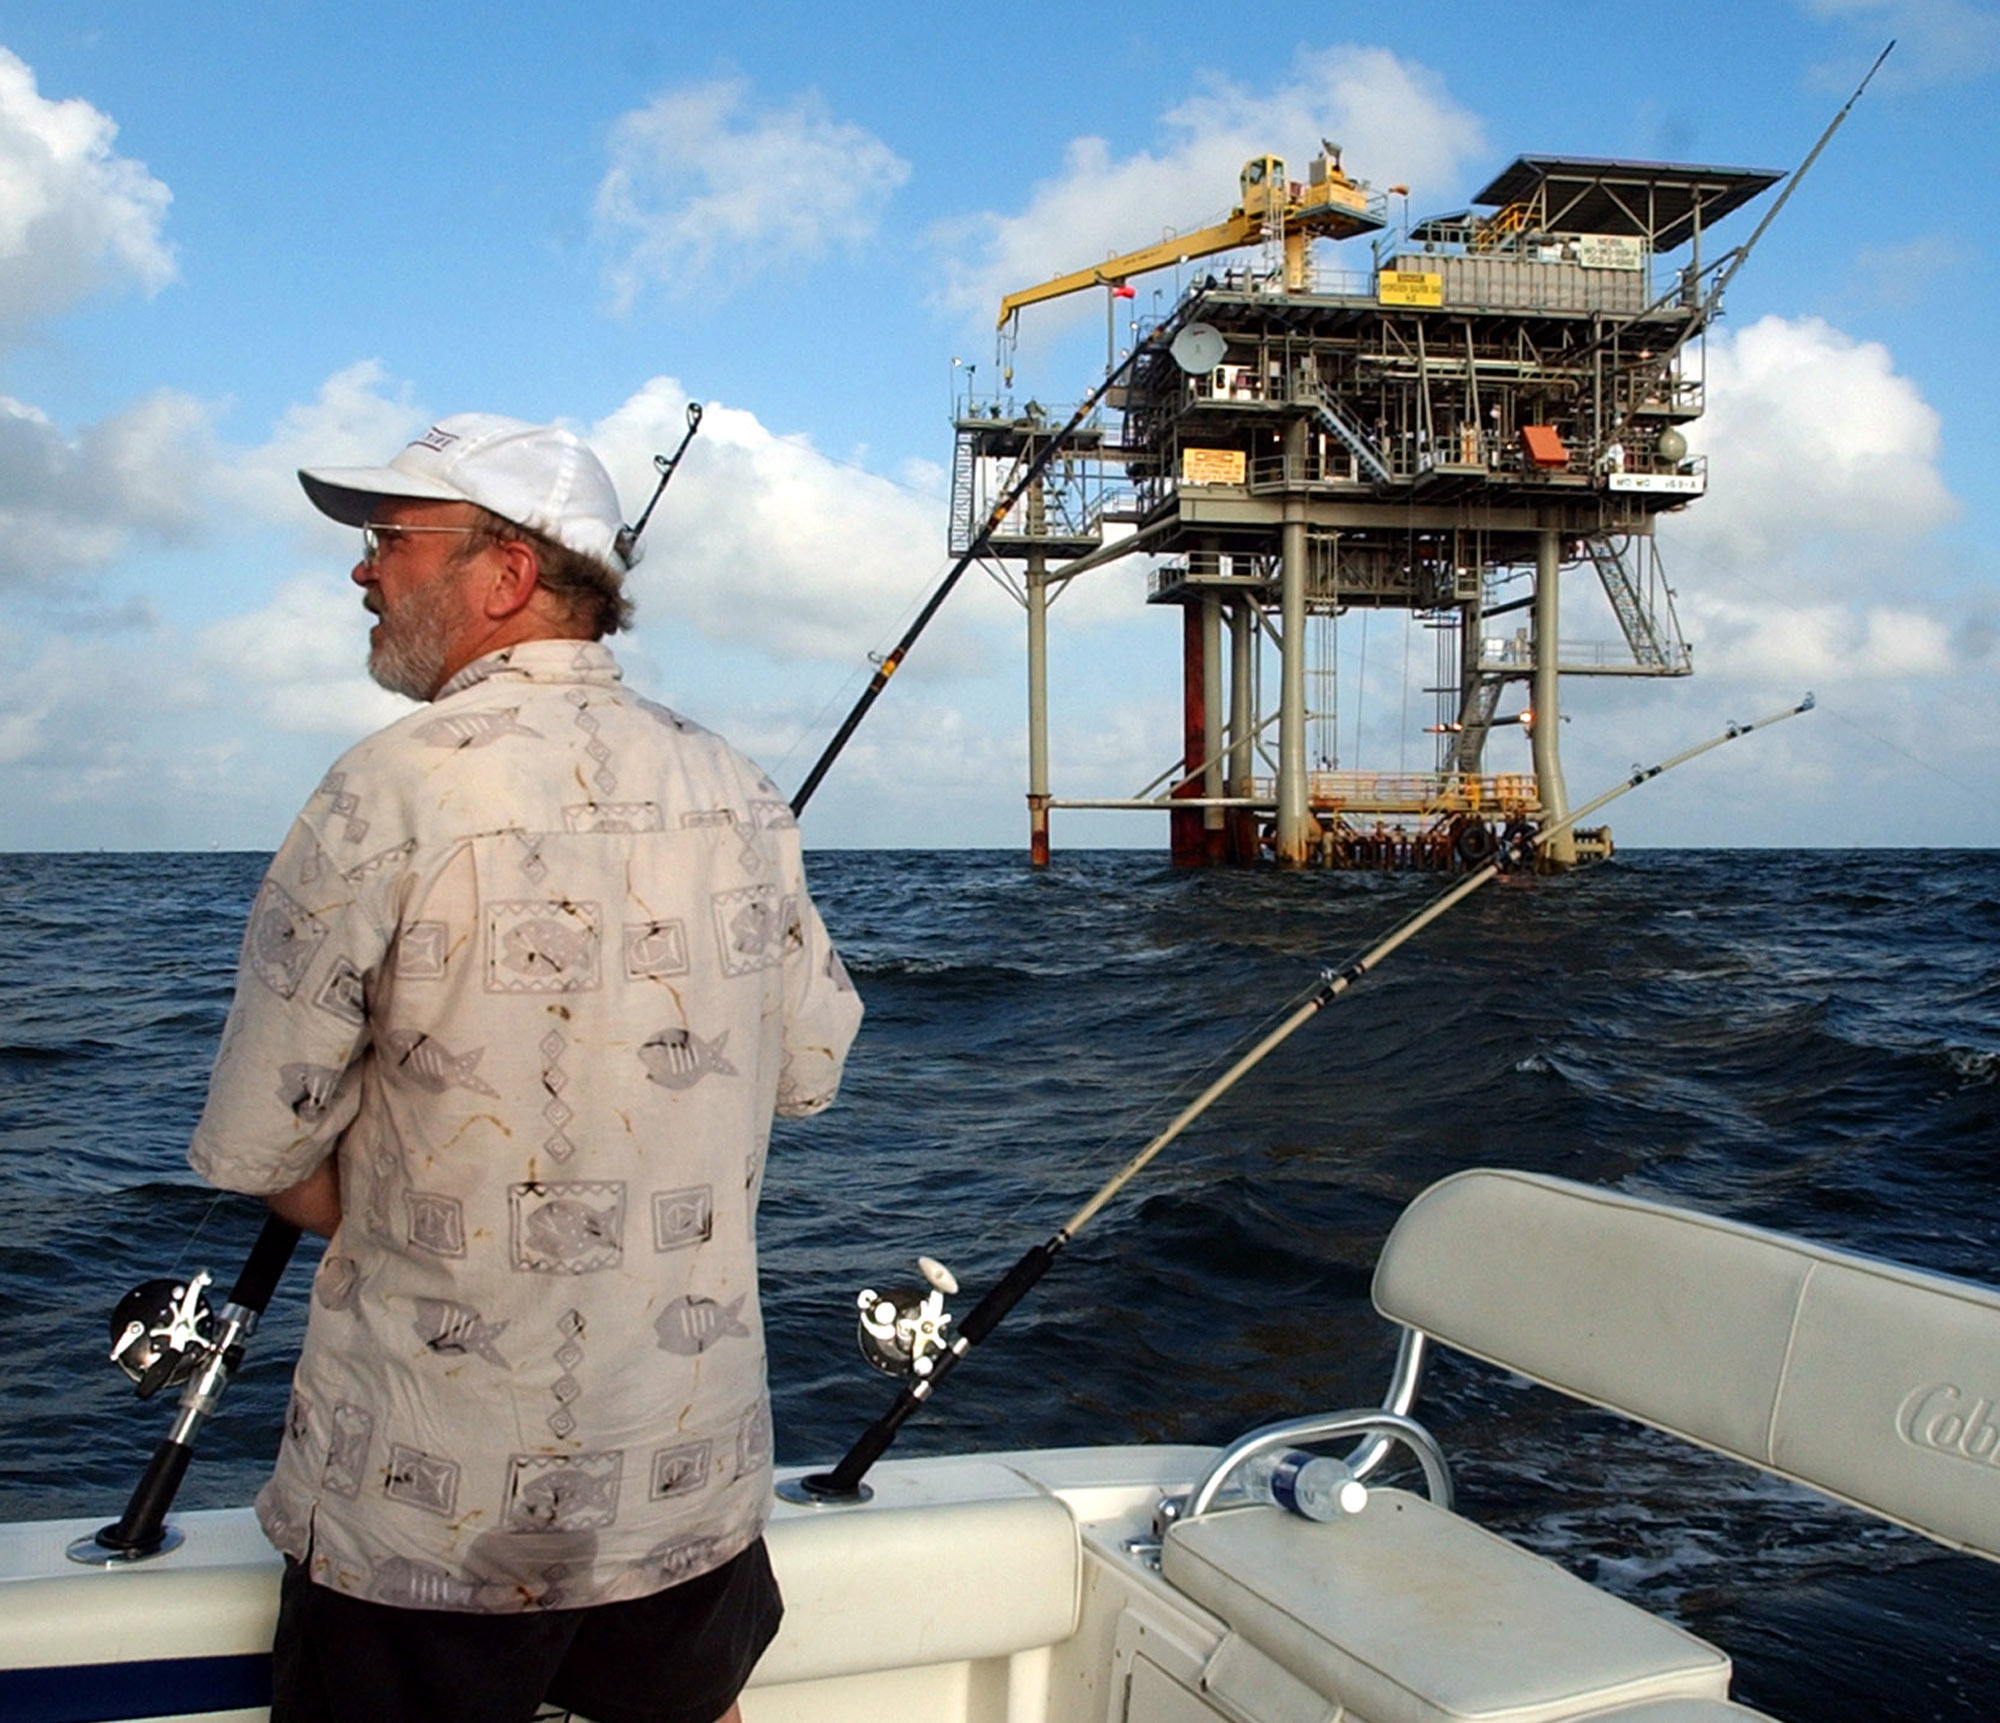 Obama oil-drilling plan small step in climate bill battle